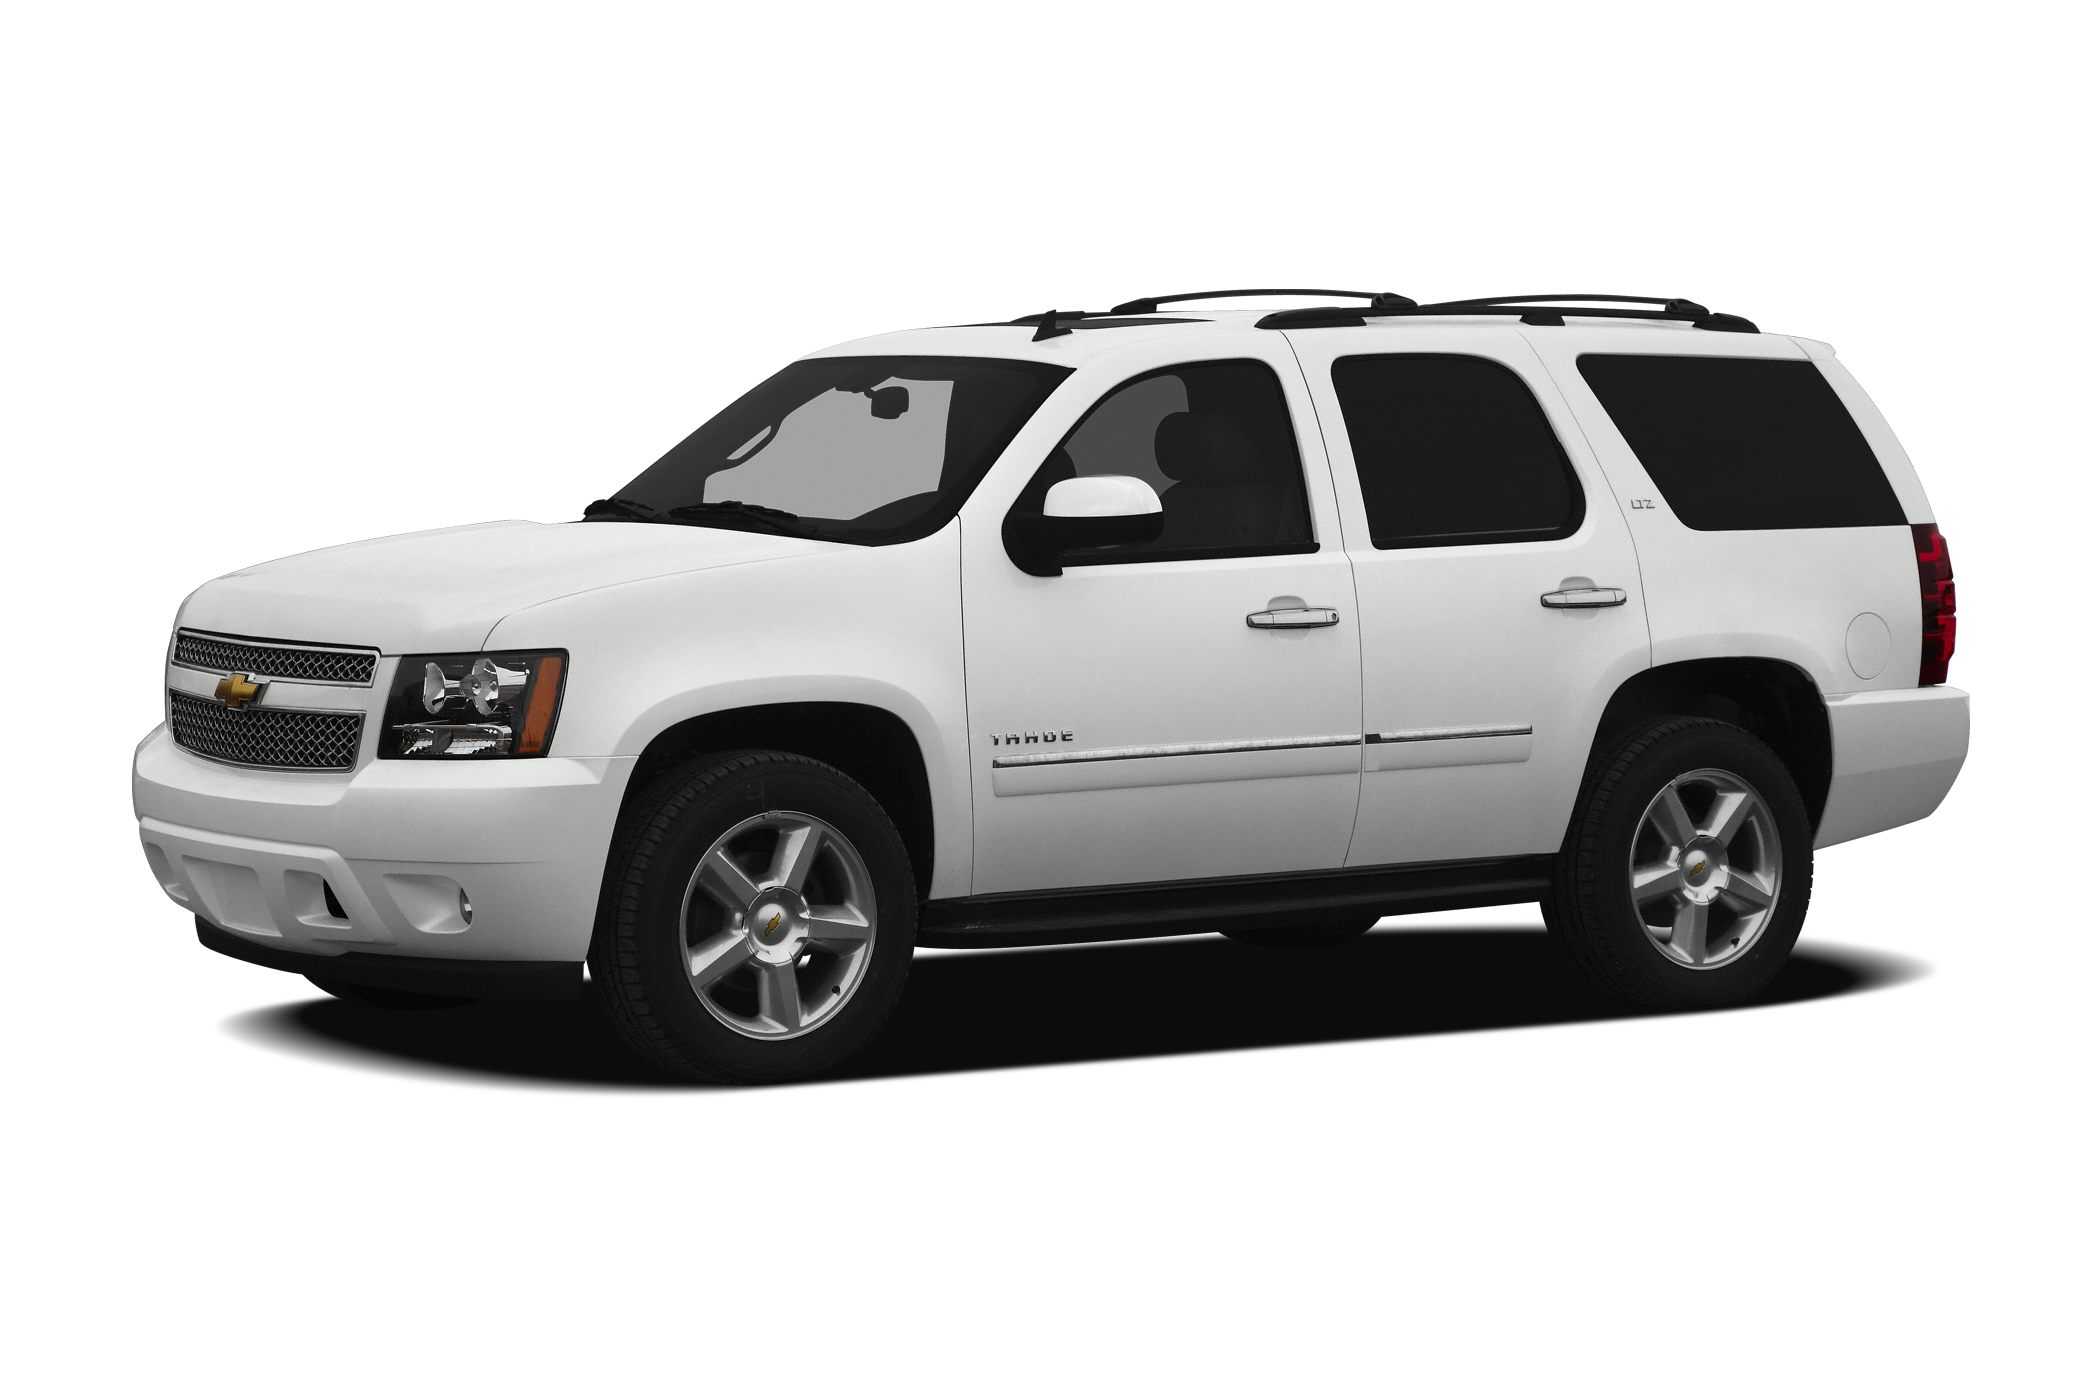 2010 Chevrolet Tahoe LTZ Blue Granite Metallic 2010 Chevrolet Tahoe NAVIGATION LEATHER MOON ROOF